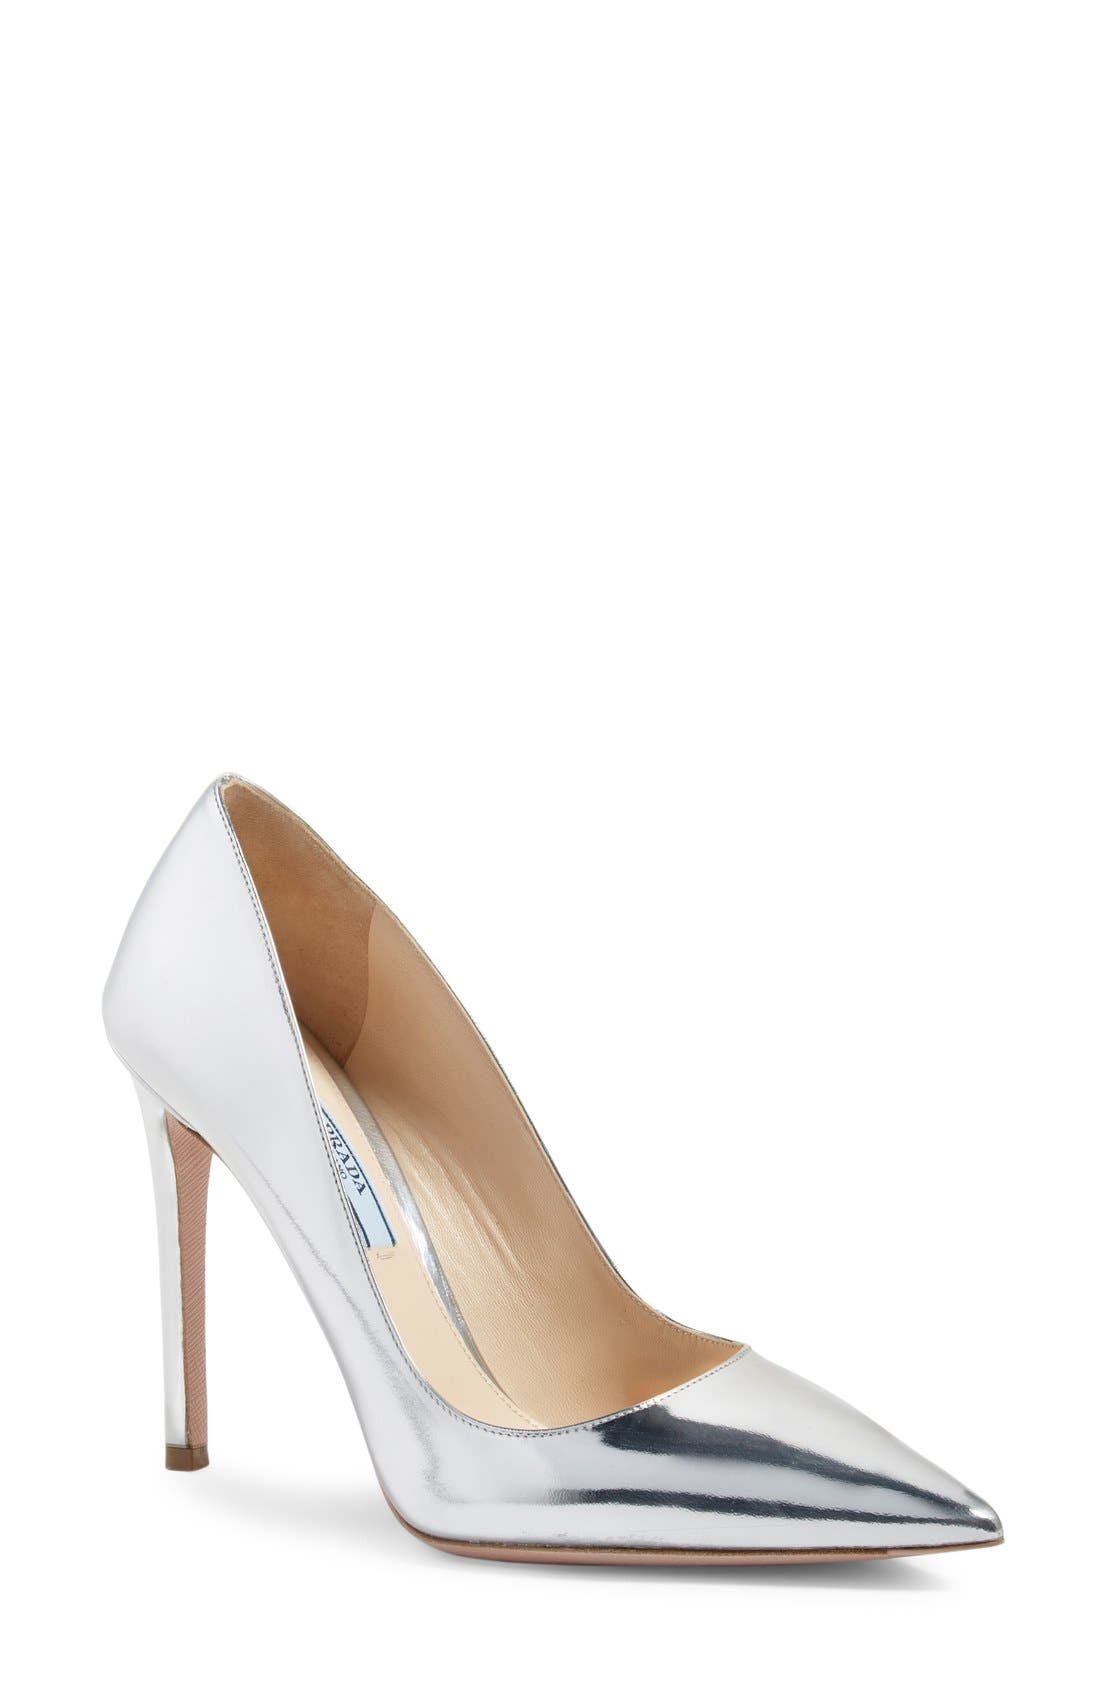 PRADA Pointy Toe Pump